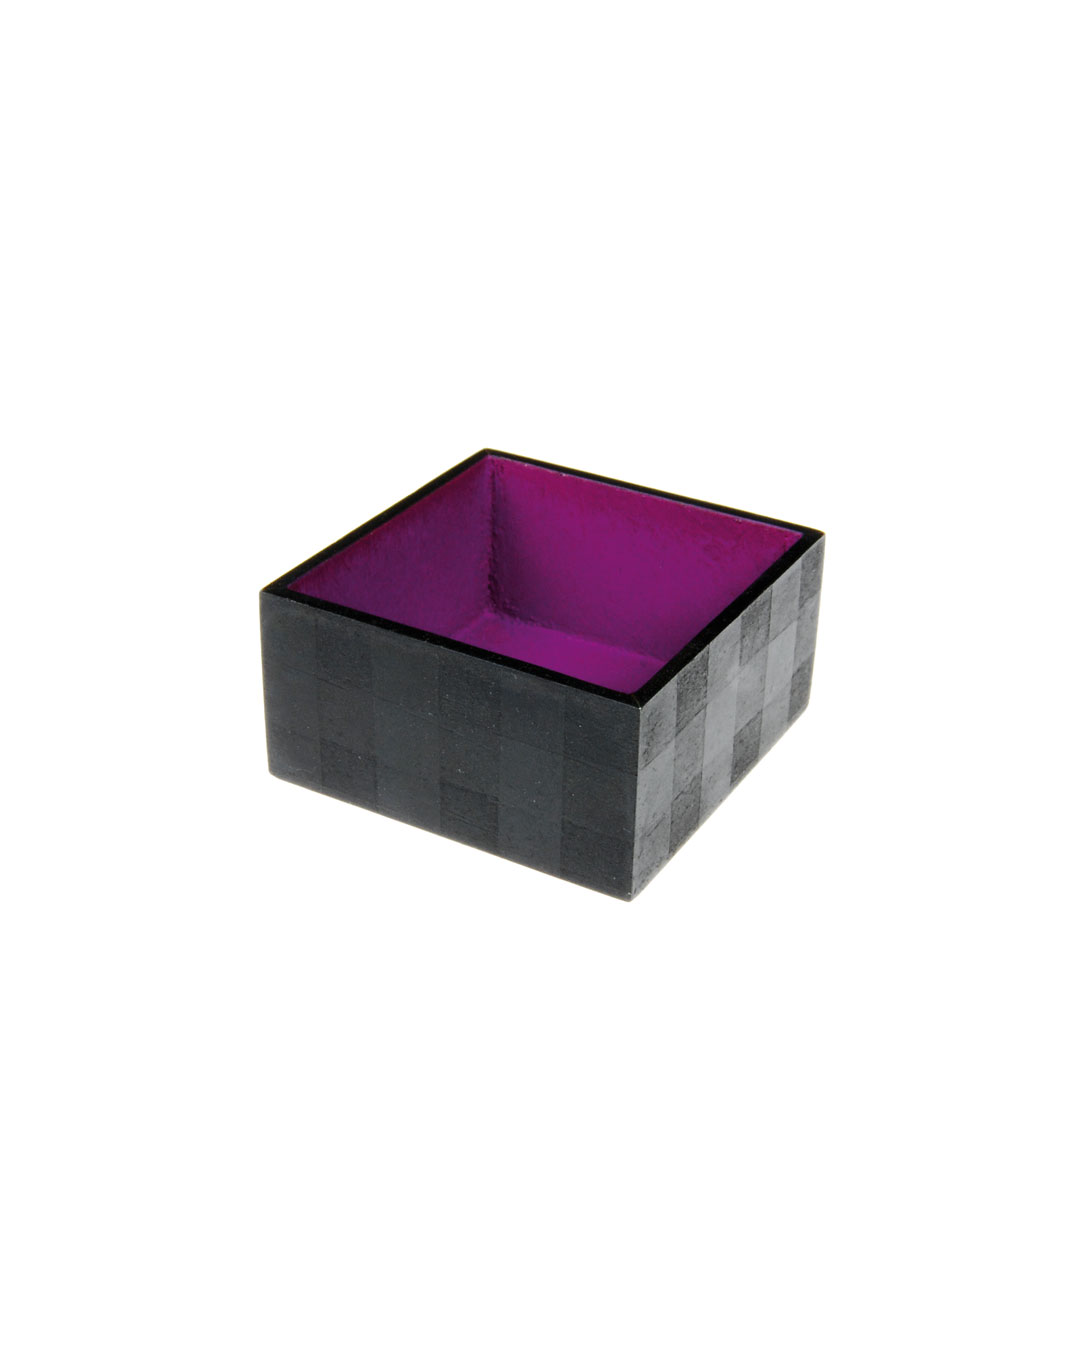 Tore Svensson, Box, 2009, brooch; etched and painted steel, 30 x 30 x 15 mm, €485